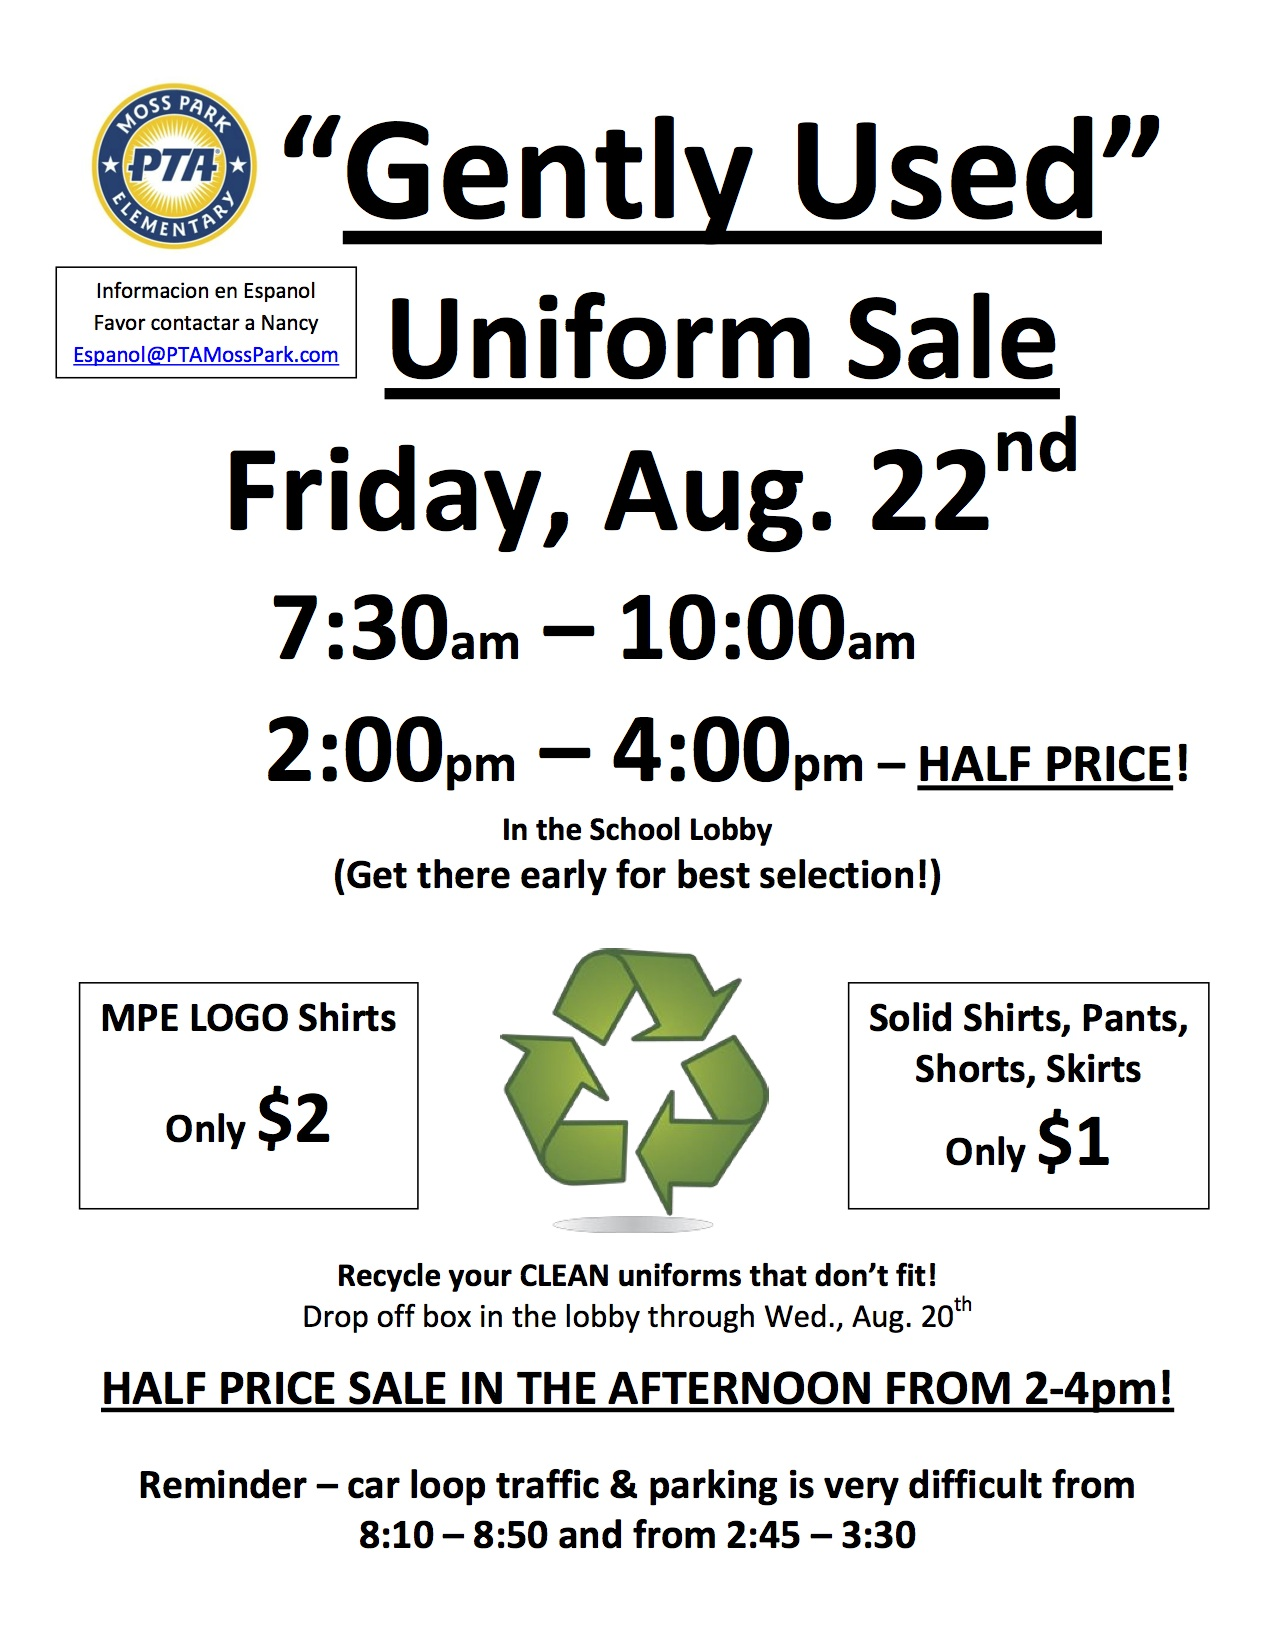 Gently Used Uniform Sale